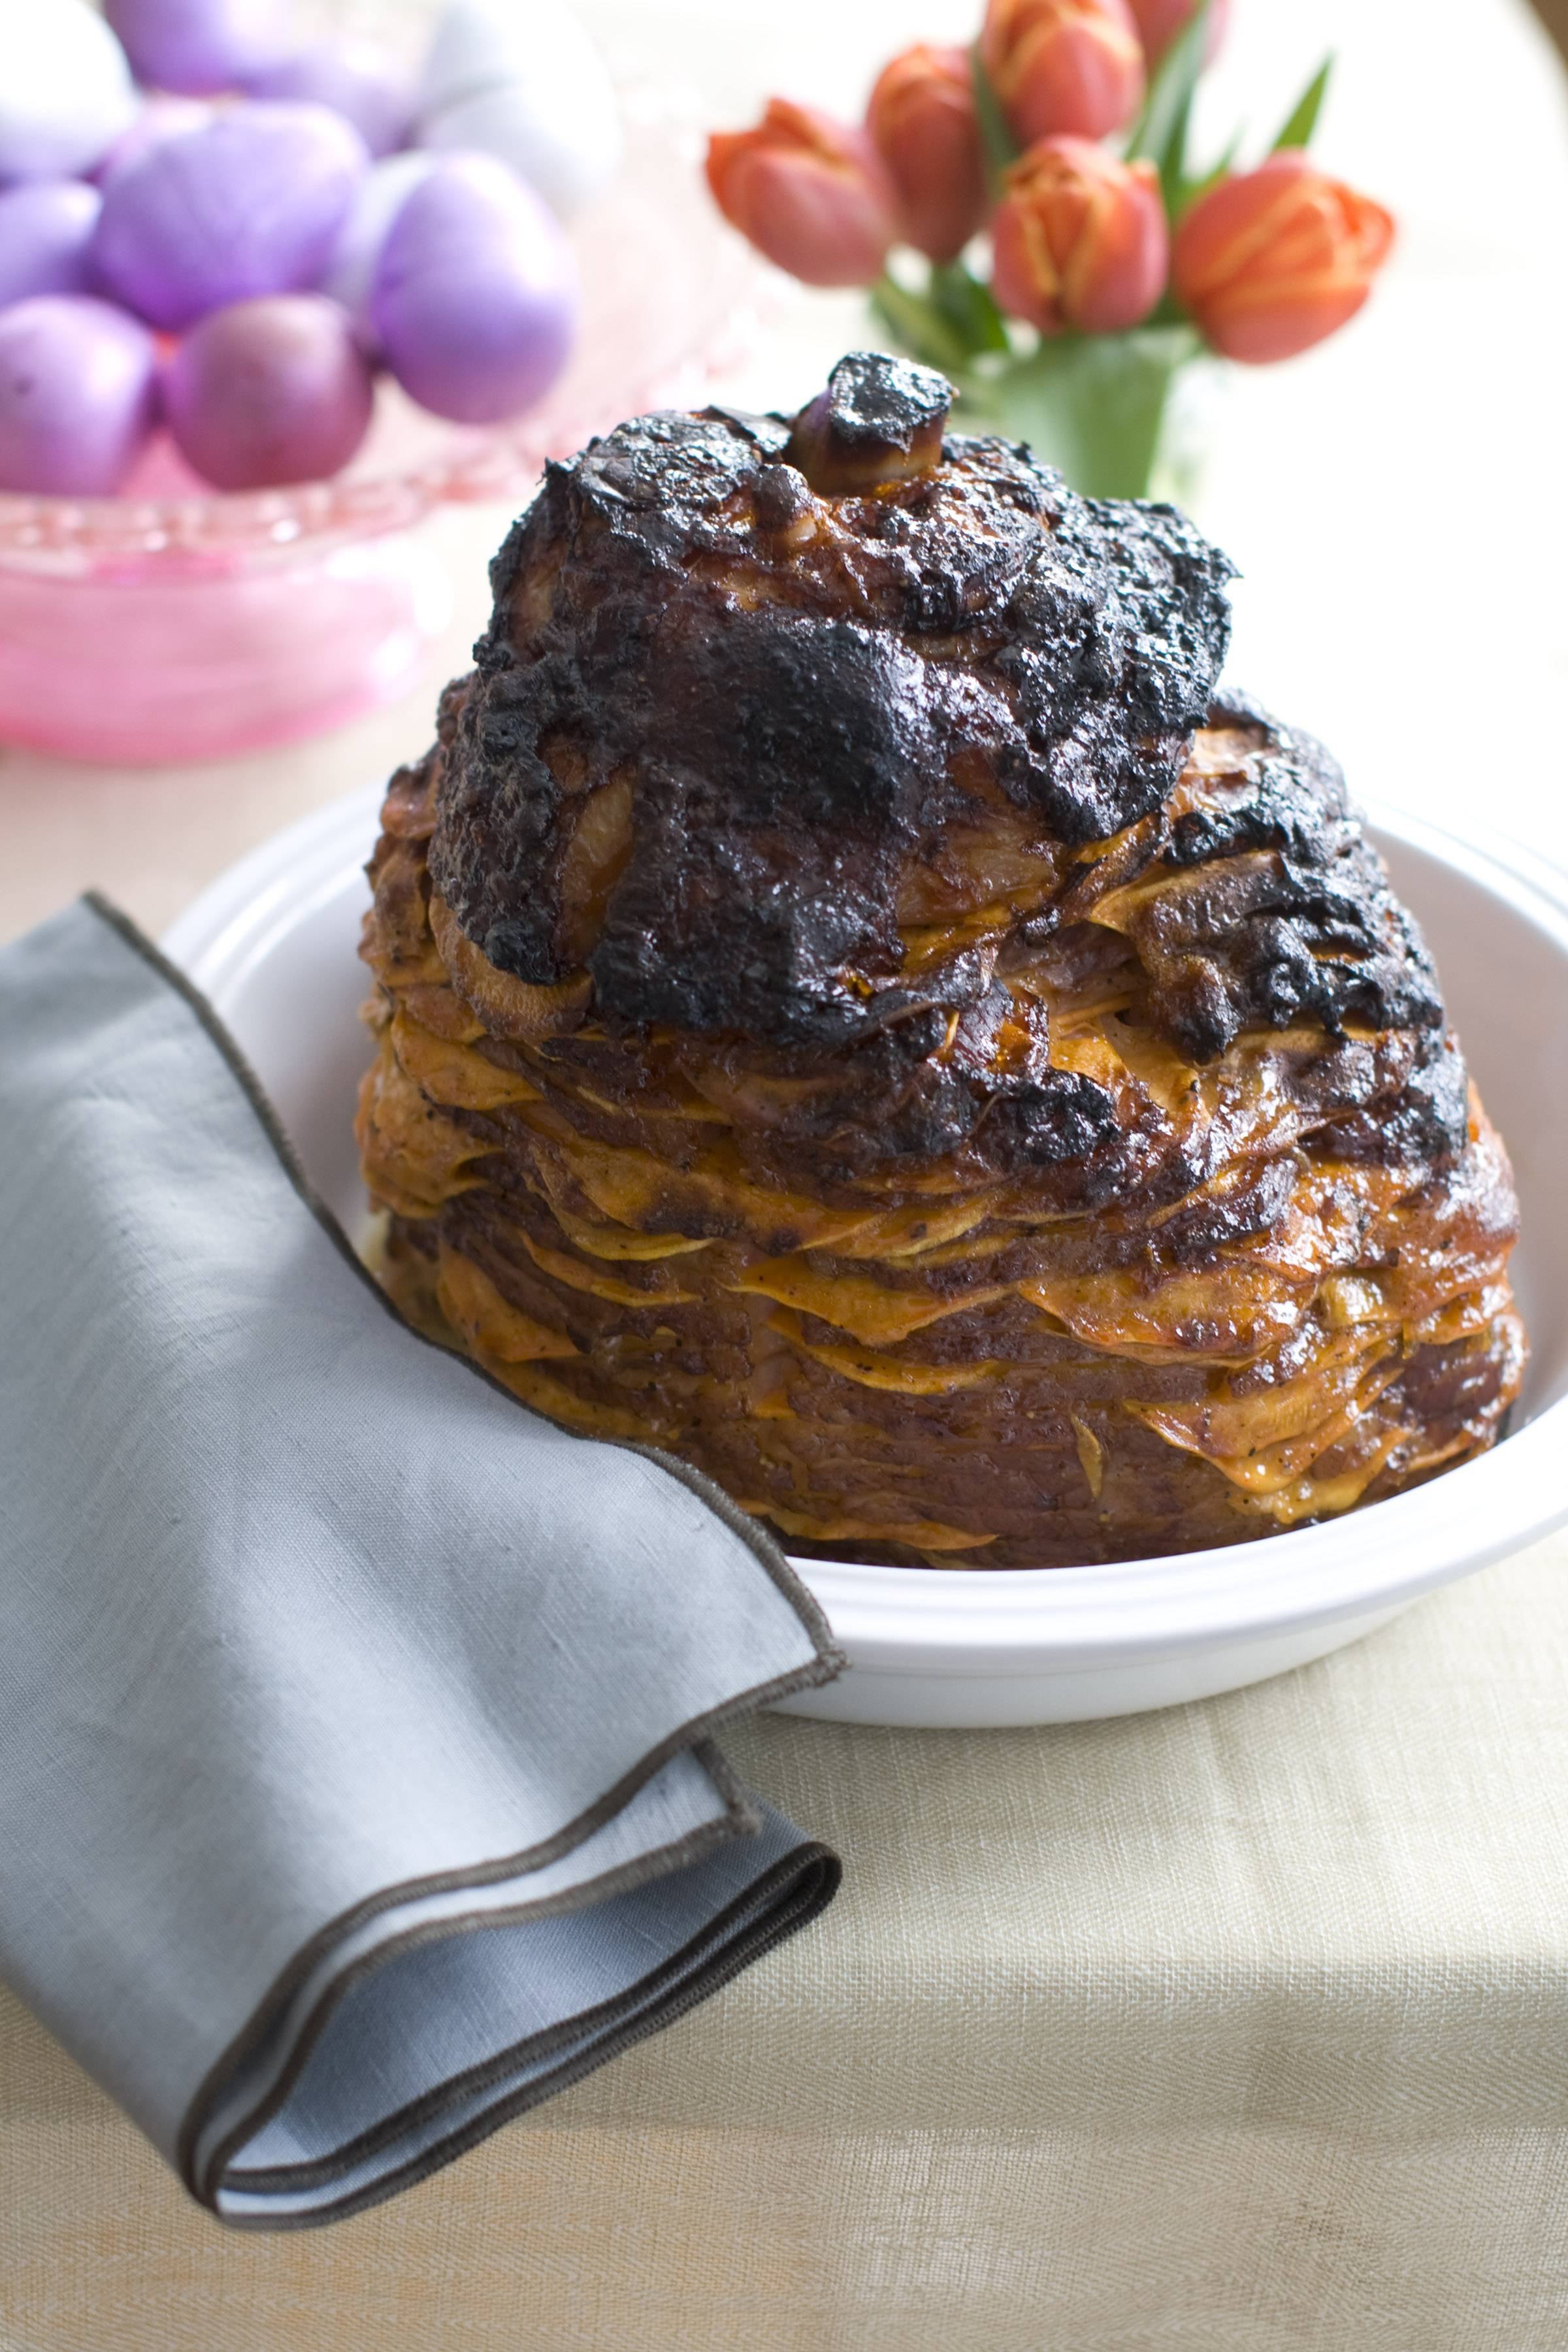 Sweet potato-stuffed spiral ham is a beautiful and delicious way to celebrate Easter.